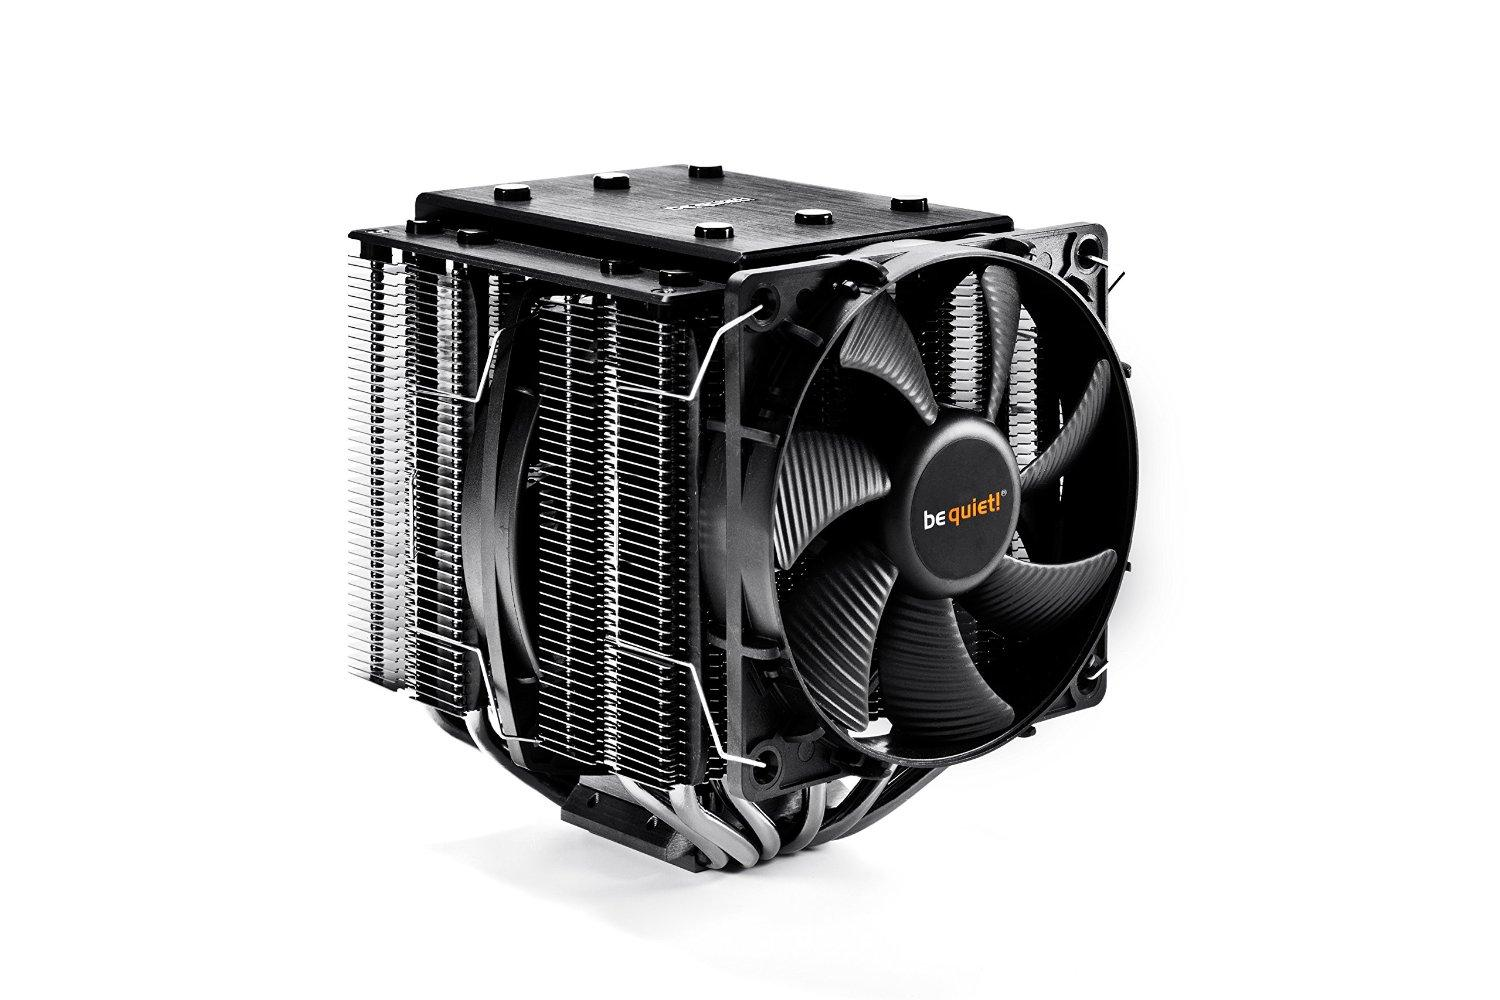 be quiet! DARK ROCK PRO 3 Silentwings CPU Cooler 250W TDP